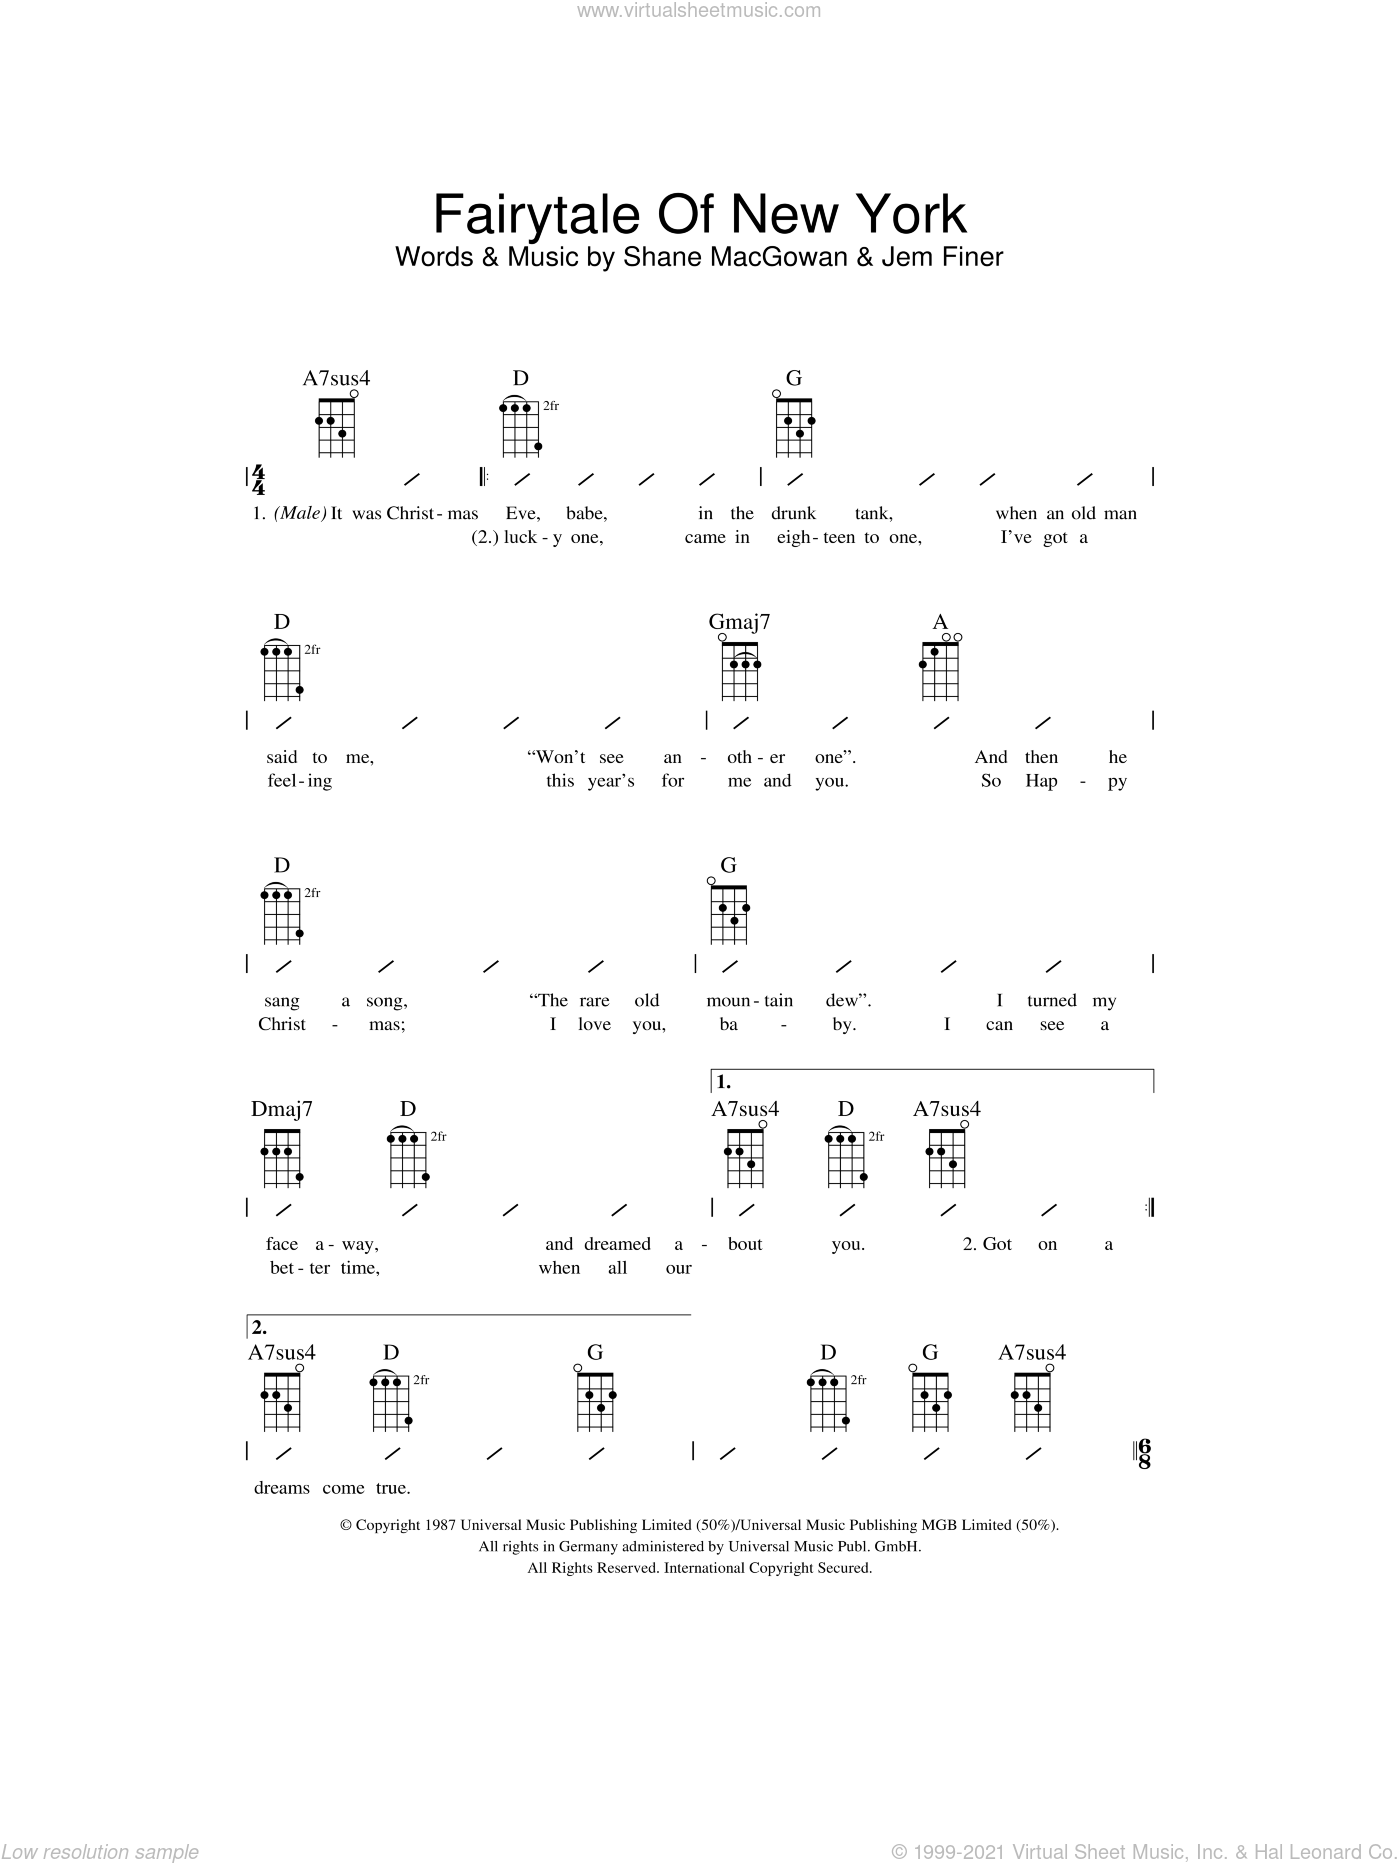 Fairytale Of New York sheet music for ukulele (chords) by Shane MacGowan